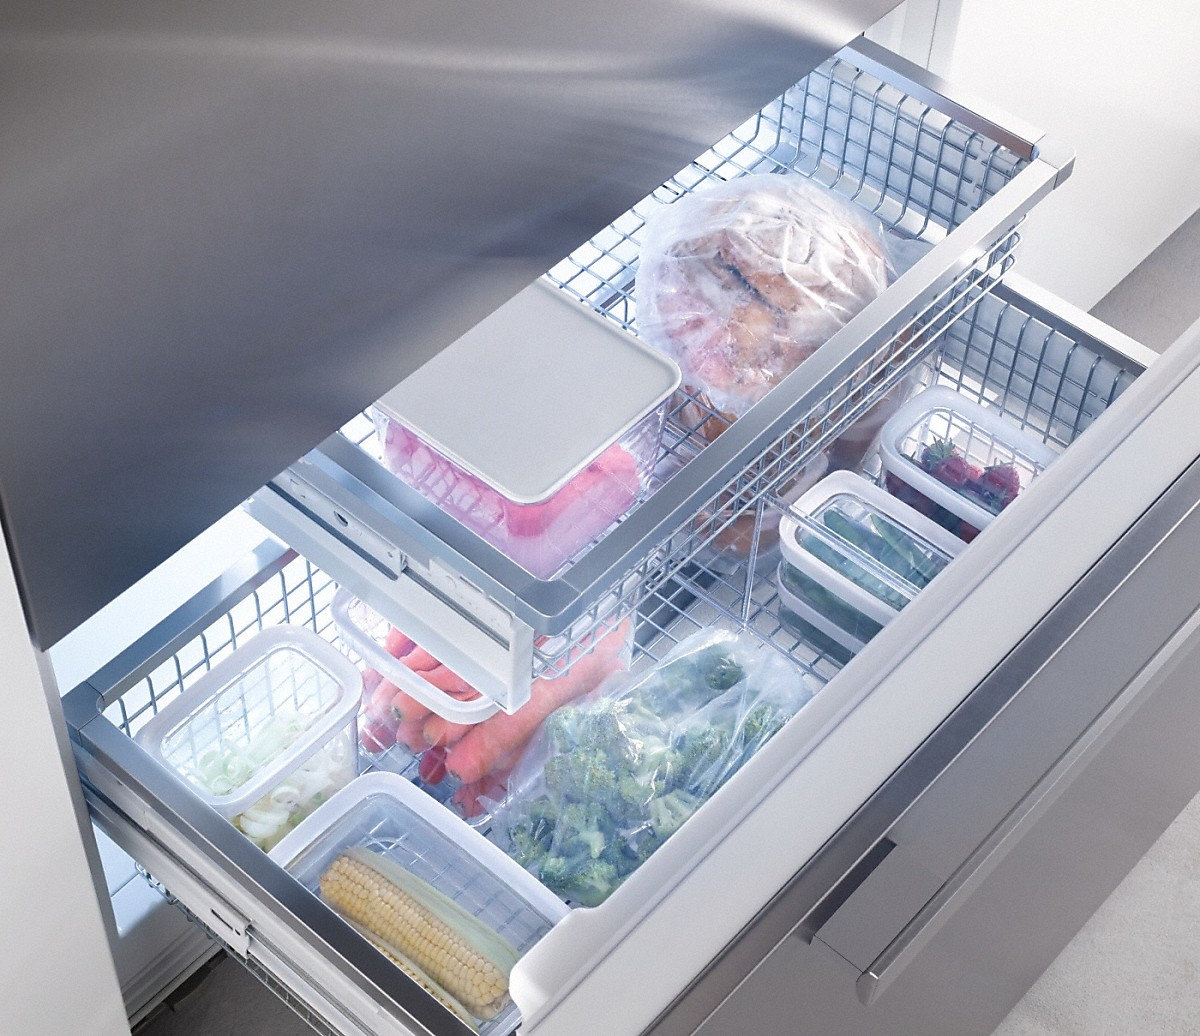 MasterCool freezer More space and maximum convenience with IceMaker and telescopic drawers